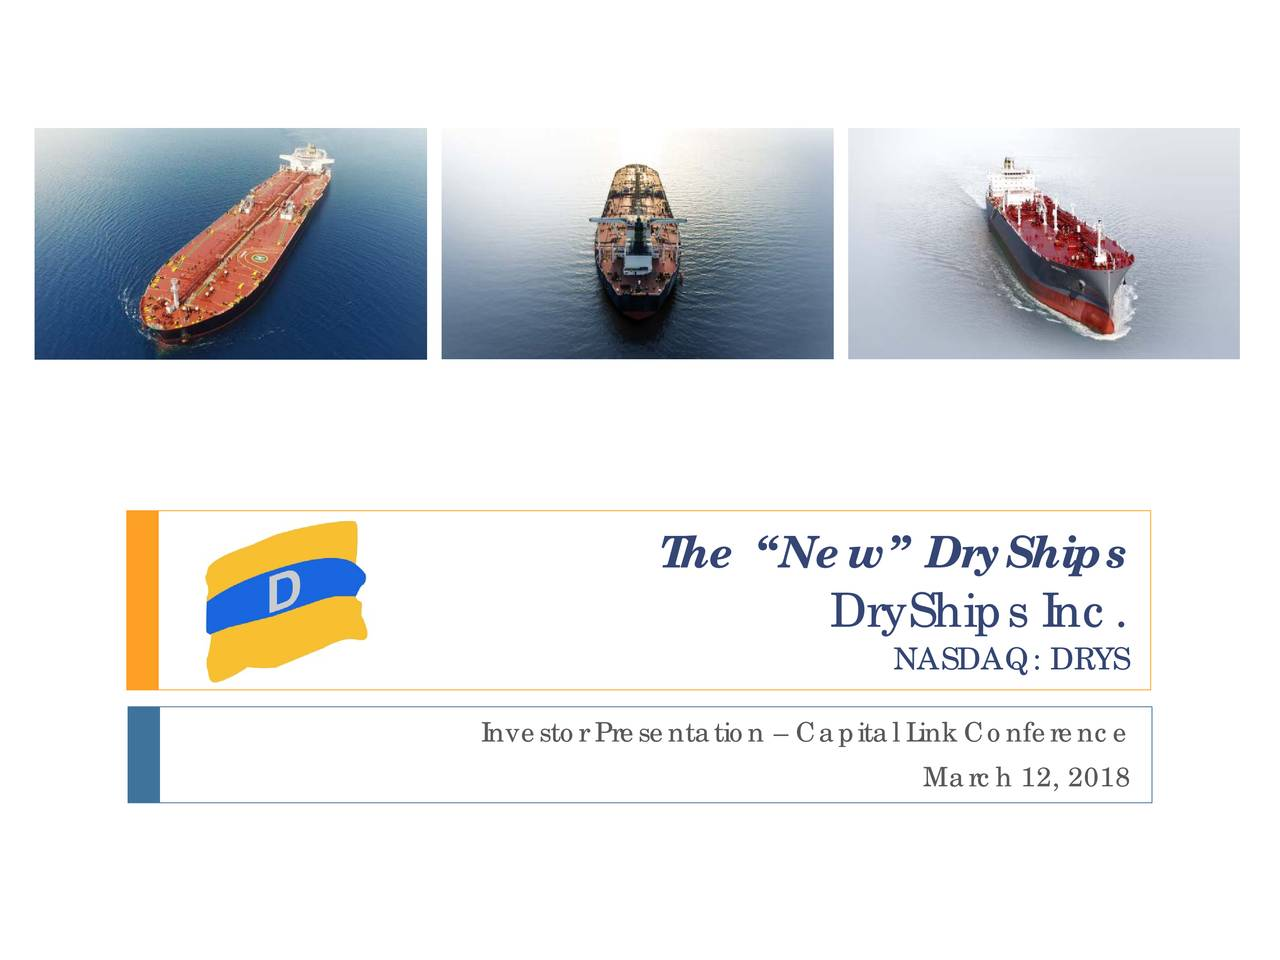 DryShips (DRYS) Presents At Capital Link's 12th Annual